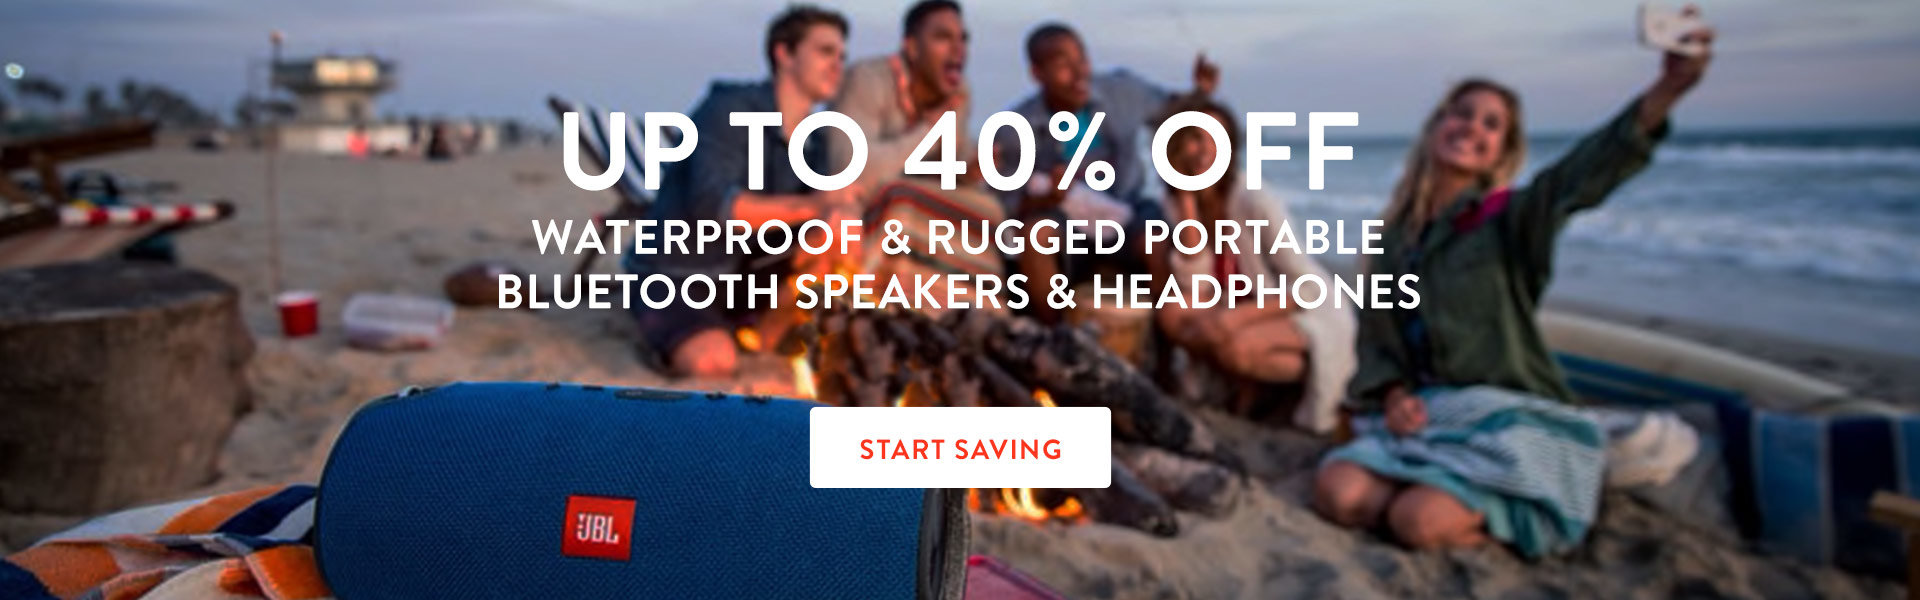 Save on Waterproof Bluetooth Speakers & Headphones